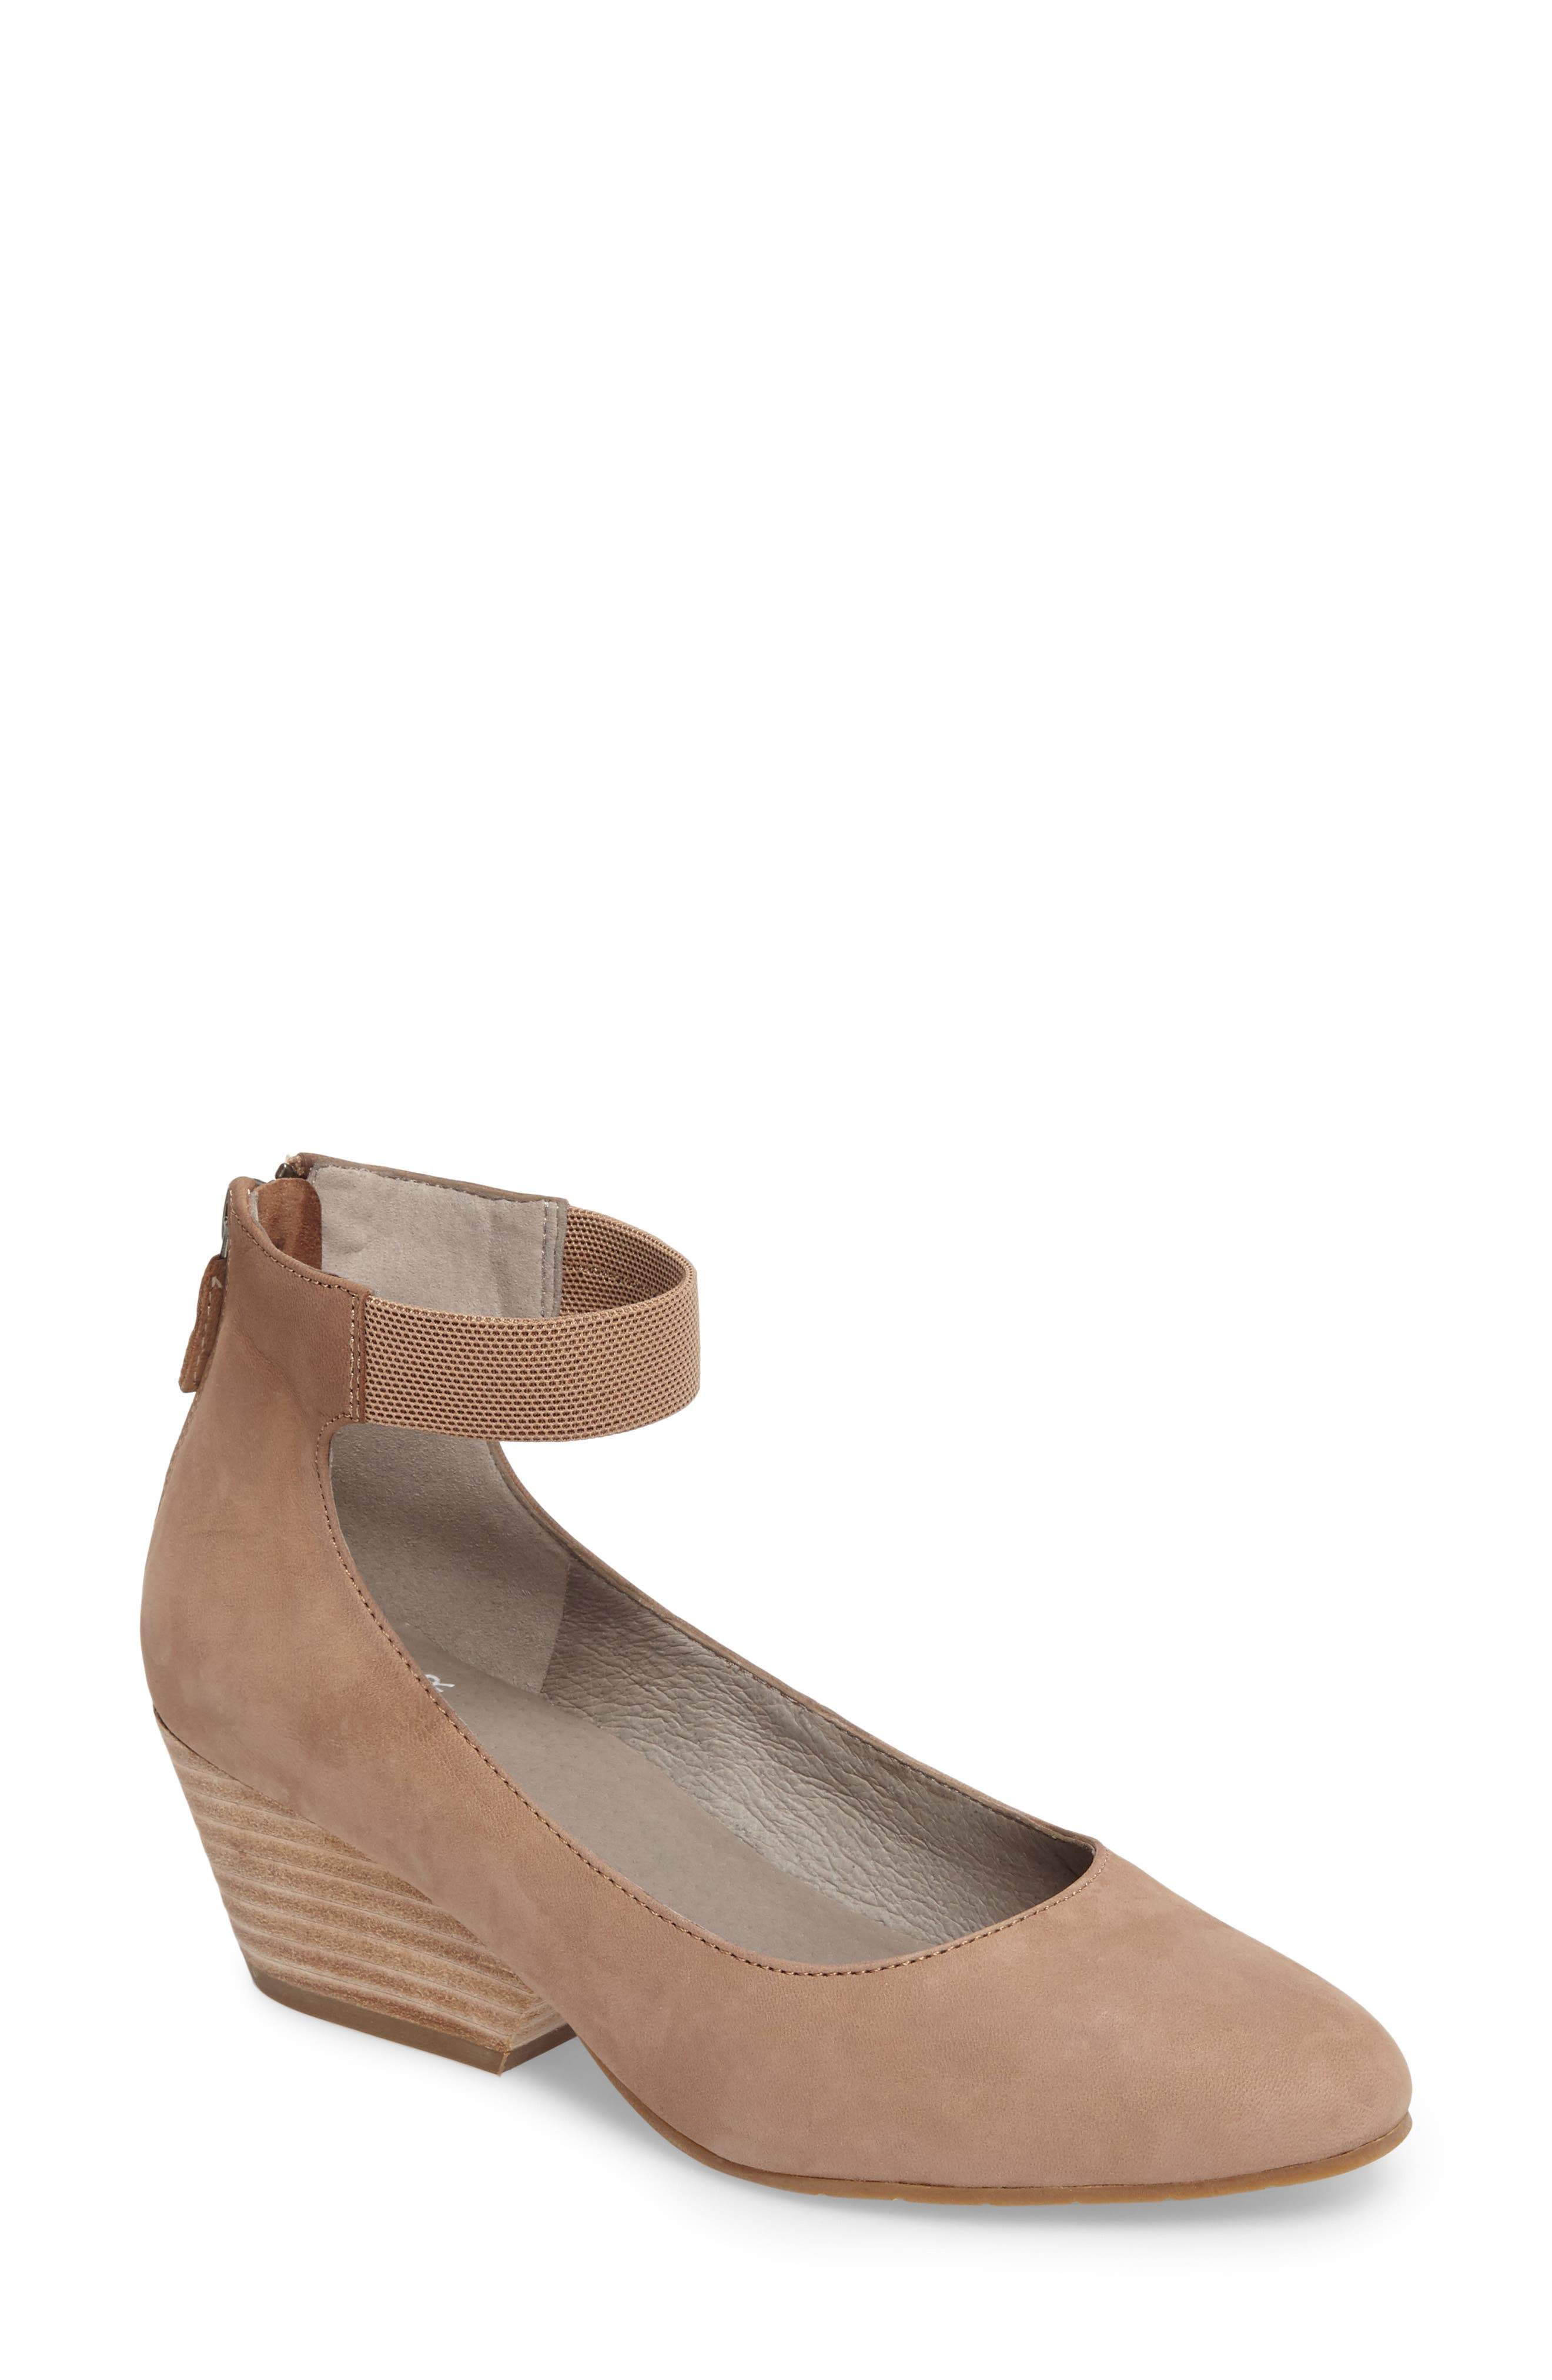 'Liz' Ankle Strap Pump,                         Main,                         color, Earth Nubuck